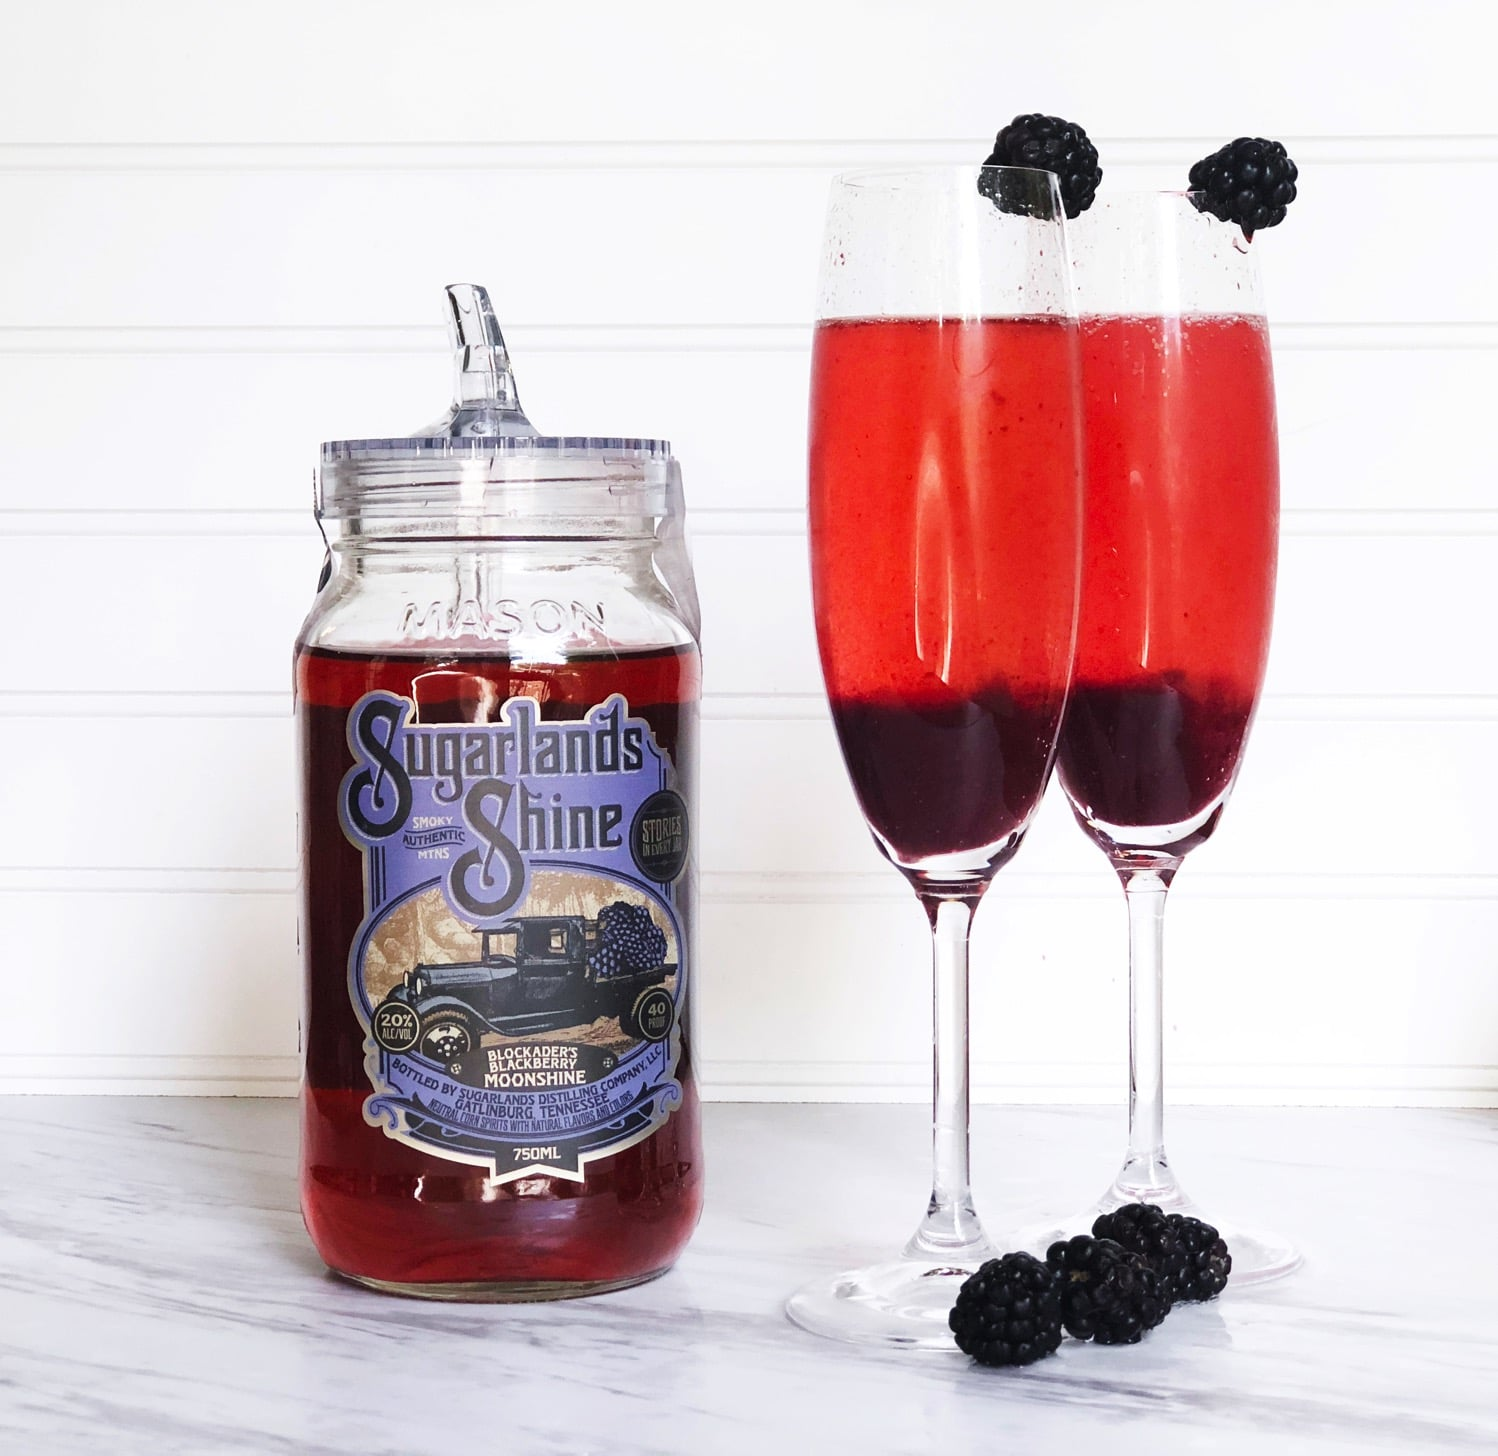 Kir royale with moonshine